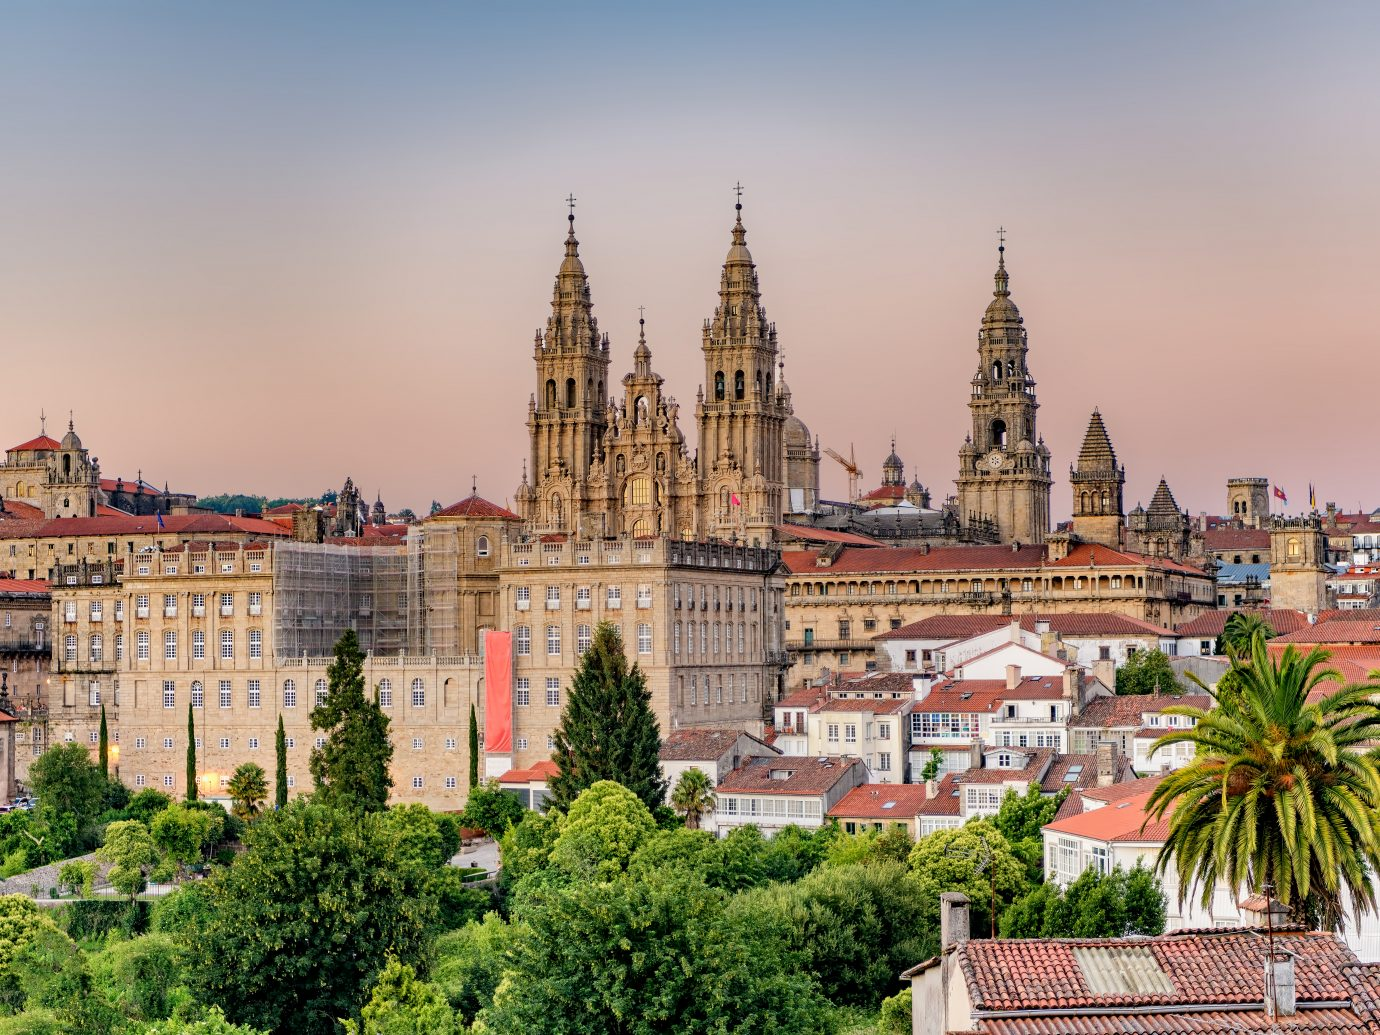 Hazy sunset on monumental Santiago de Compostela cathedral and cityscape.